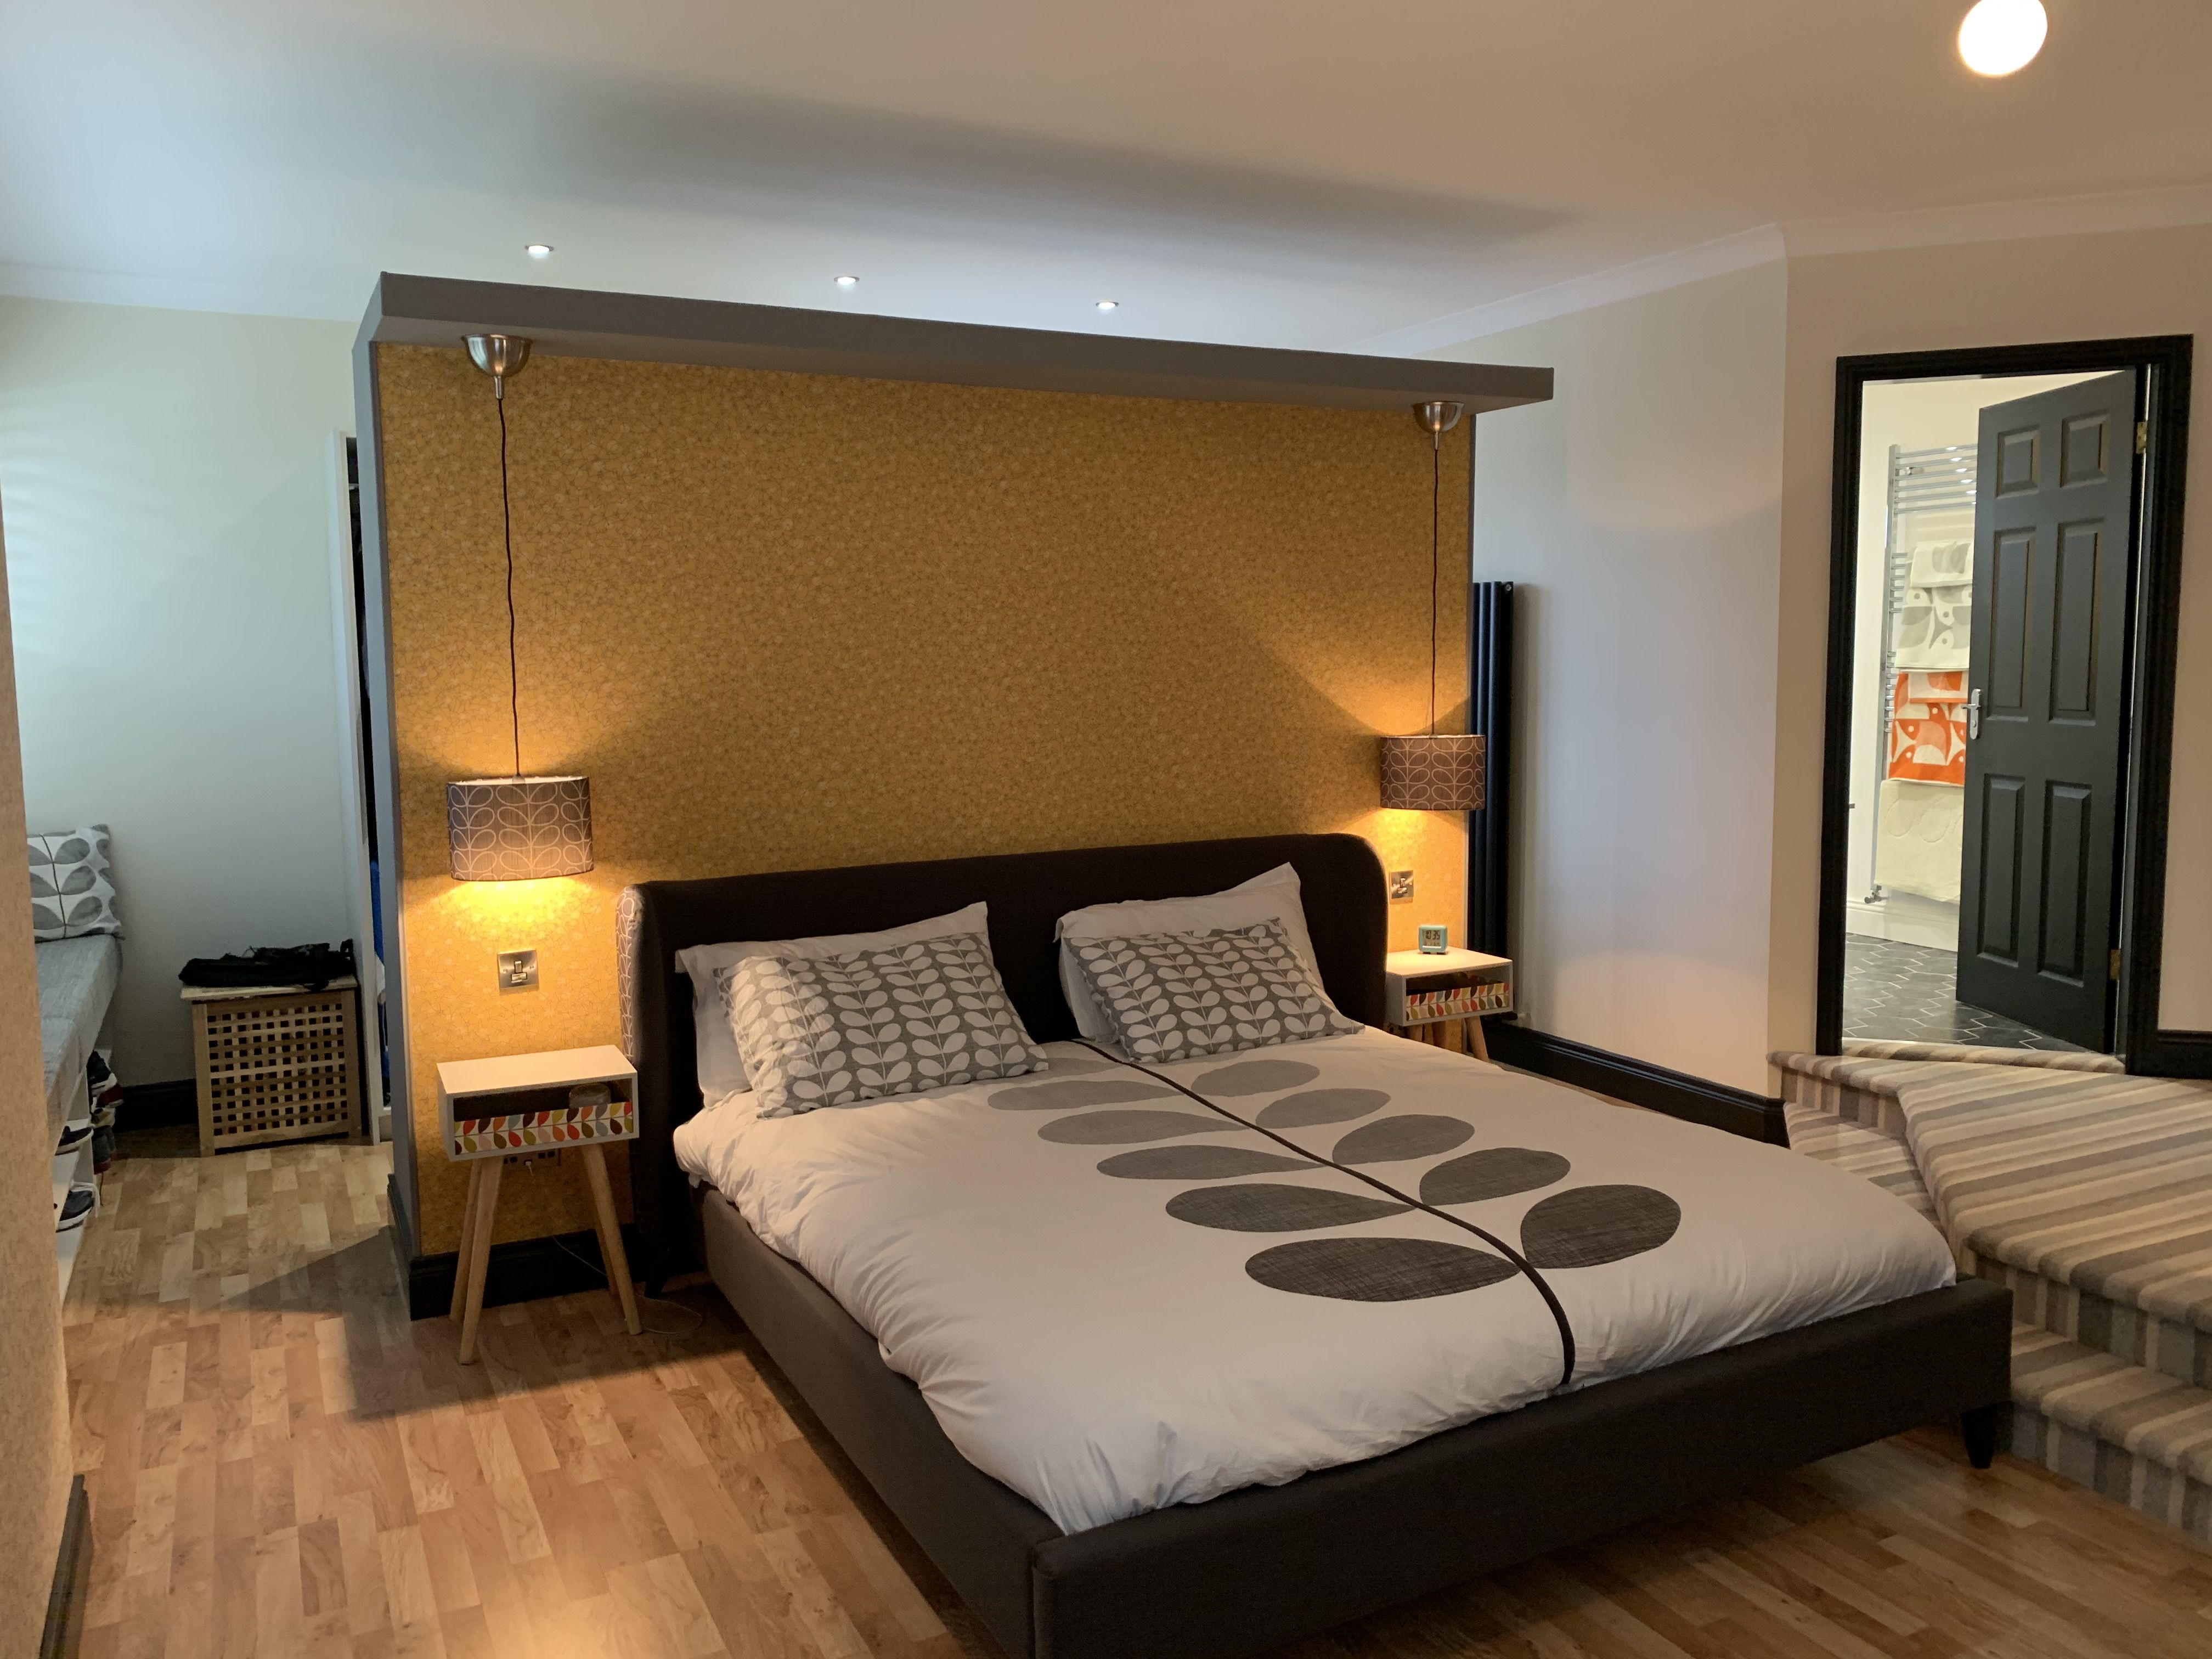 Pin by Kitchens Direct NI on Customer Bedrooms in 2020